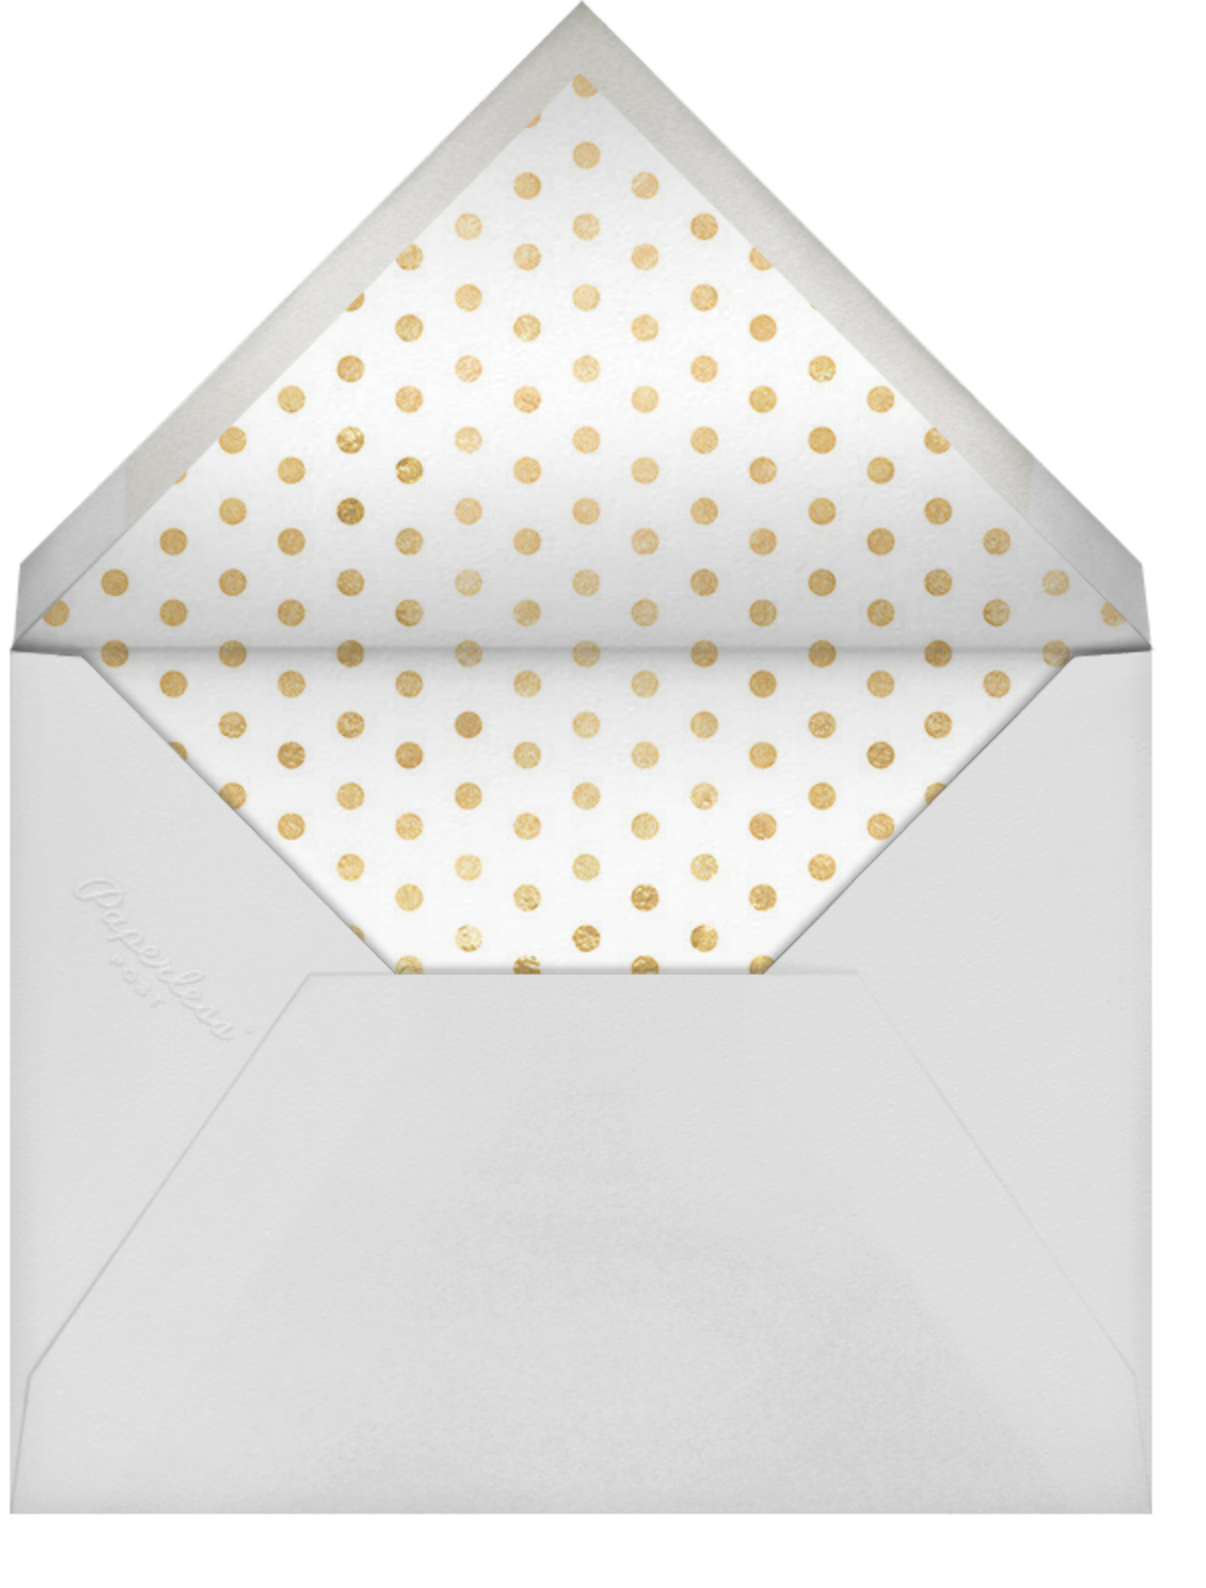 Lucky Number - Forty - kate spade new york - Adult birthday - envelope back